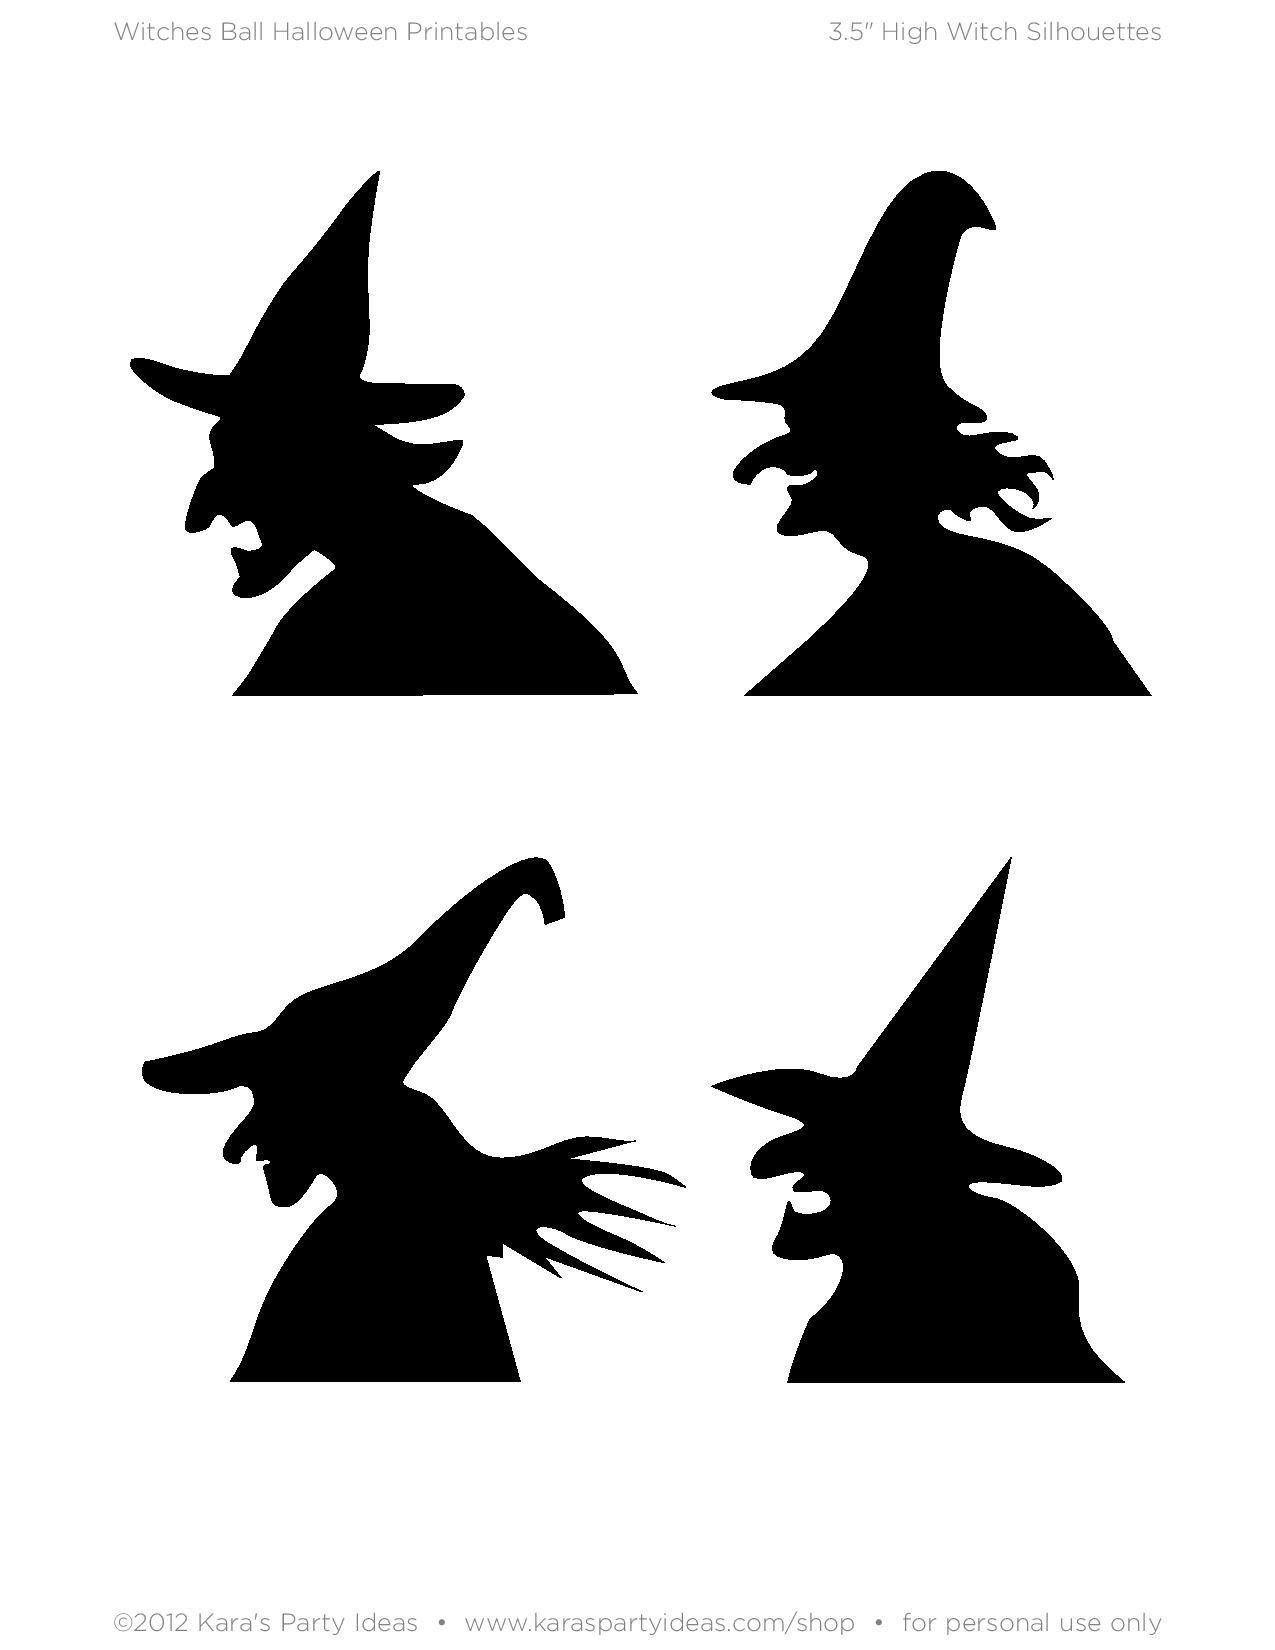 Halloween Witch Silhouette Printables | Witch silhouette, Witches ...